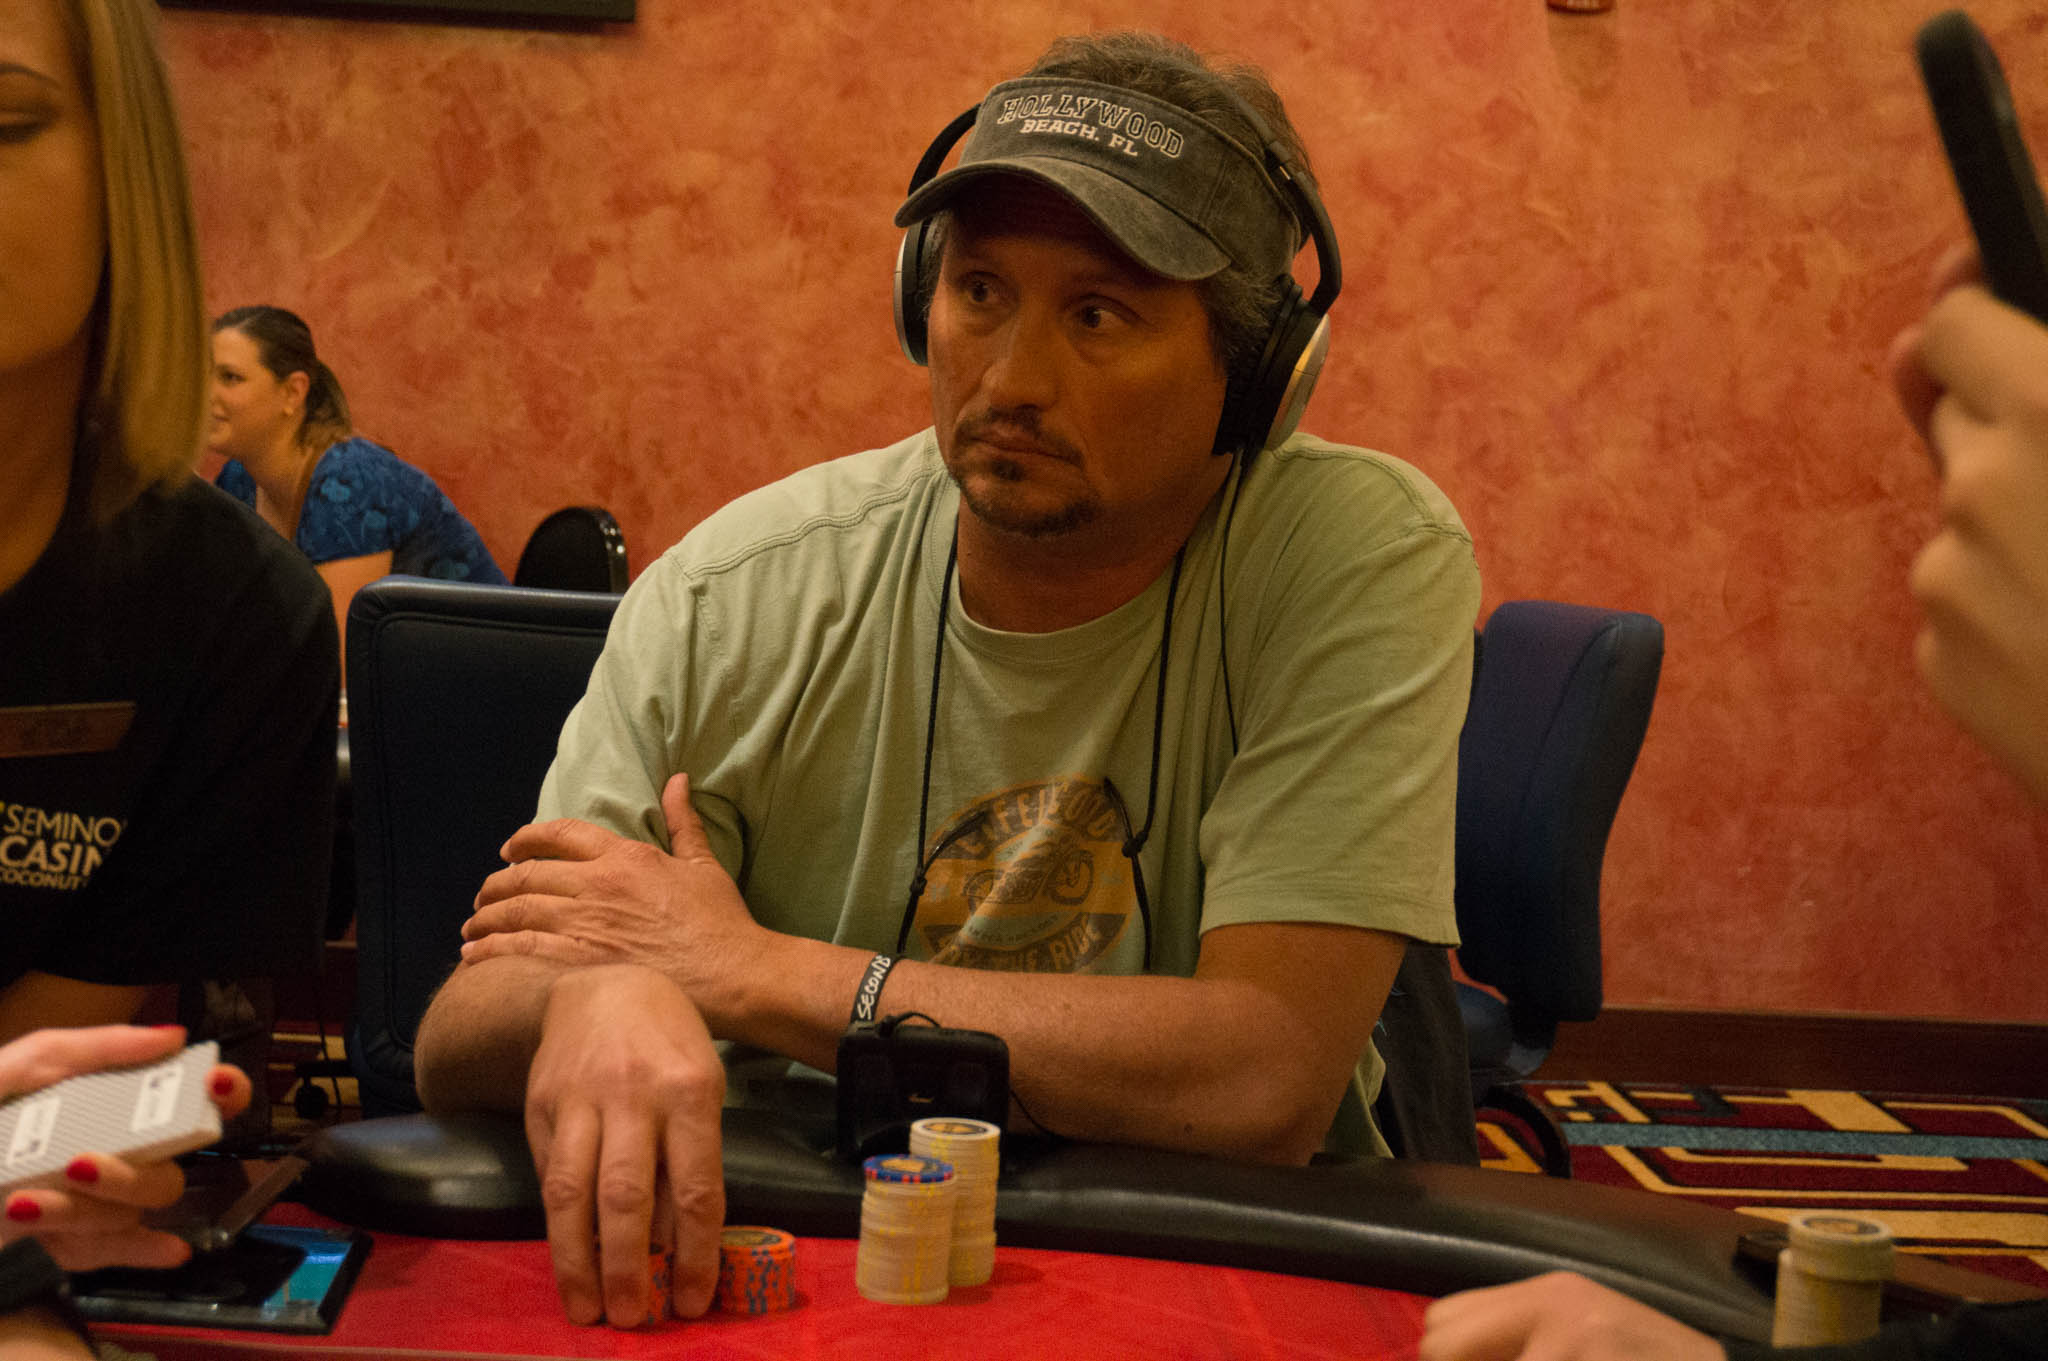 John Holley - 23rd Place ($7,000)